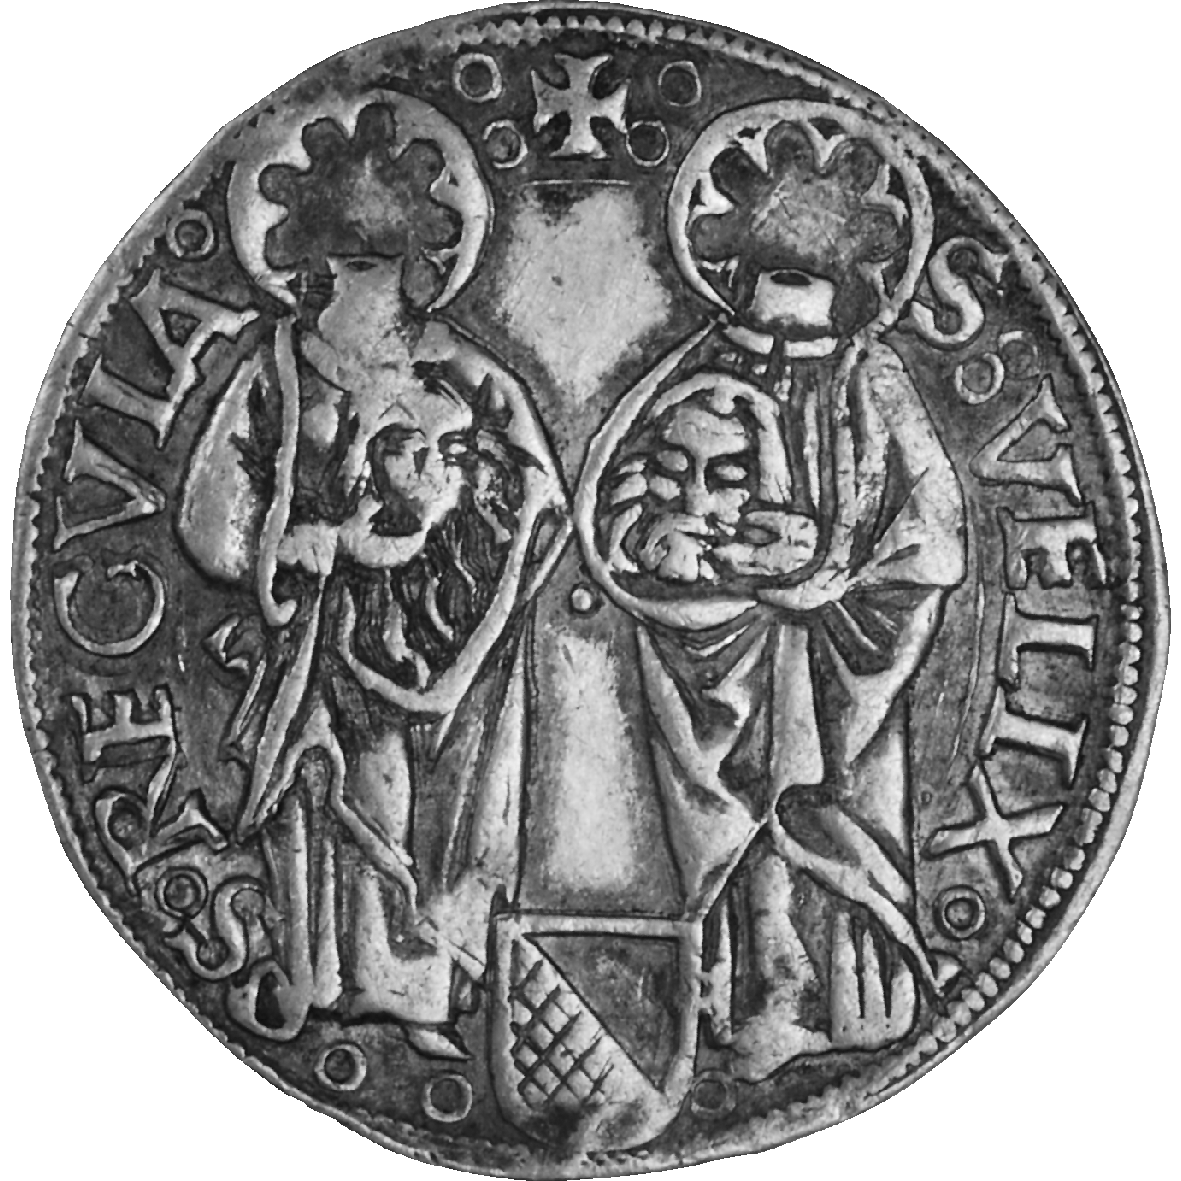 Holy Roman Empire, City of Zurich, Dicken 1504 (obverse)